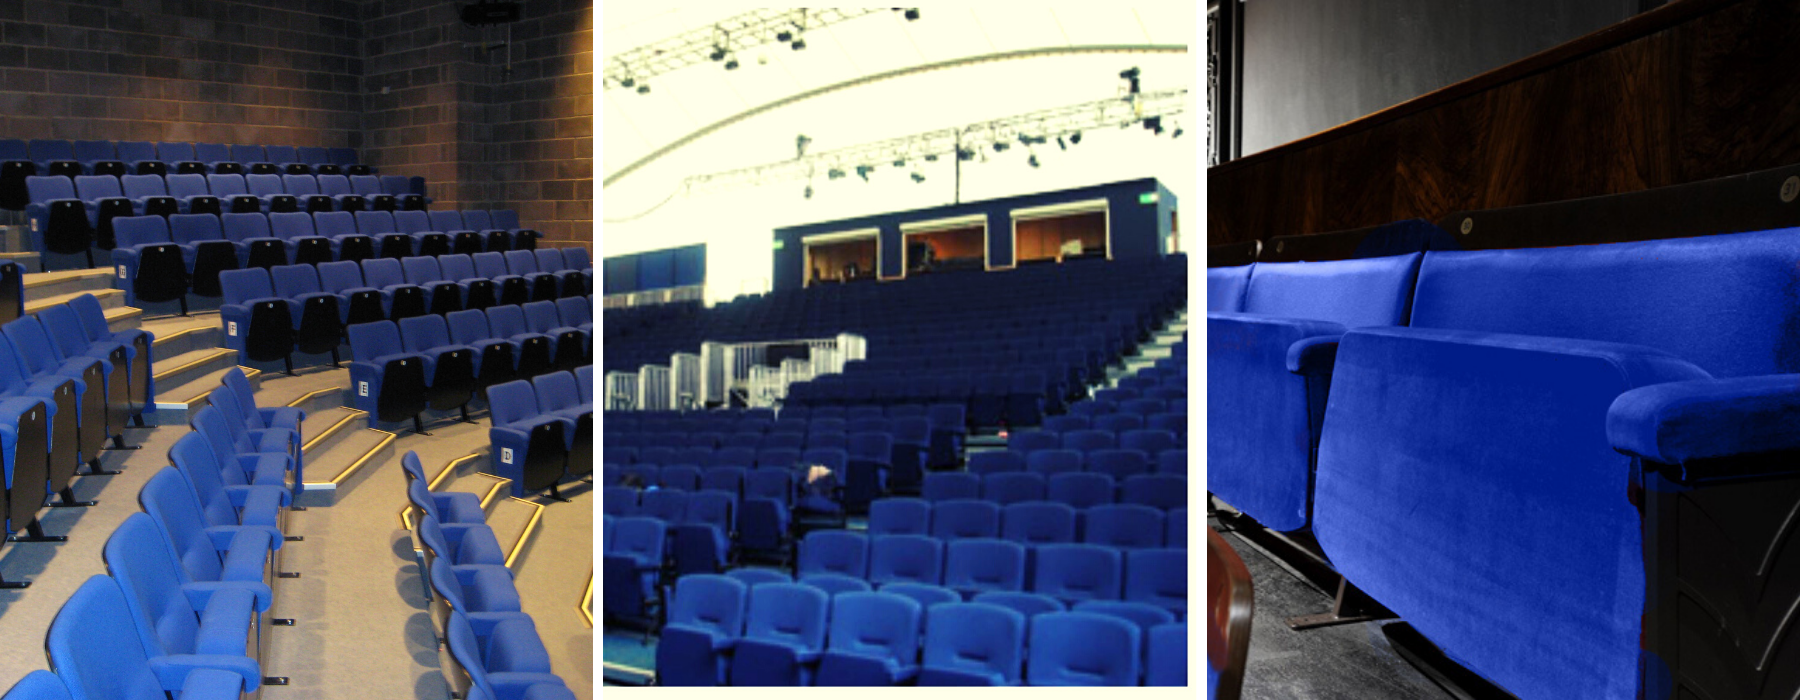 3 different theatres with seating upholstered in blue fabrics